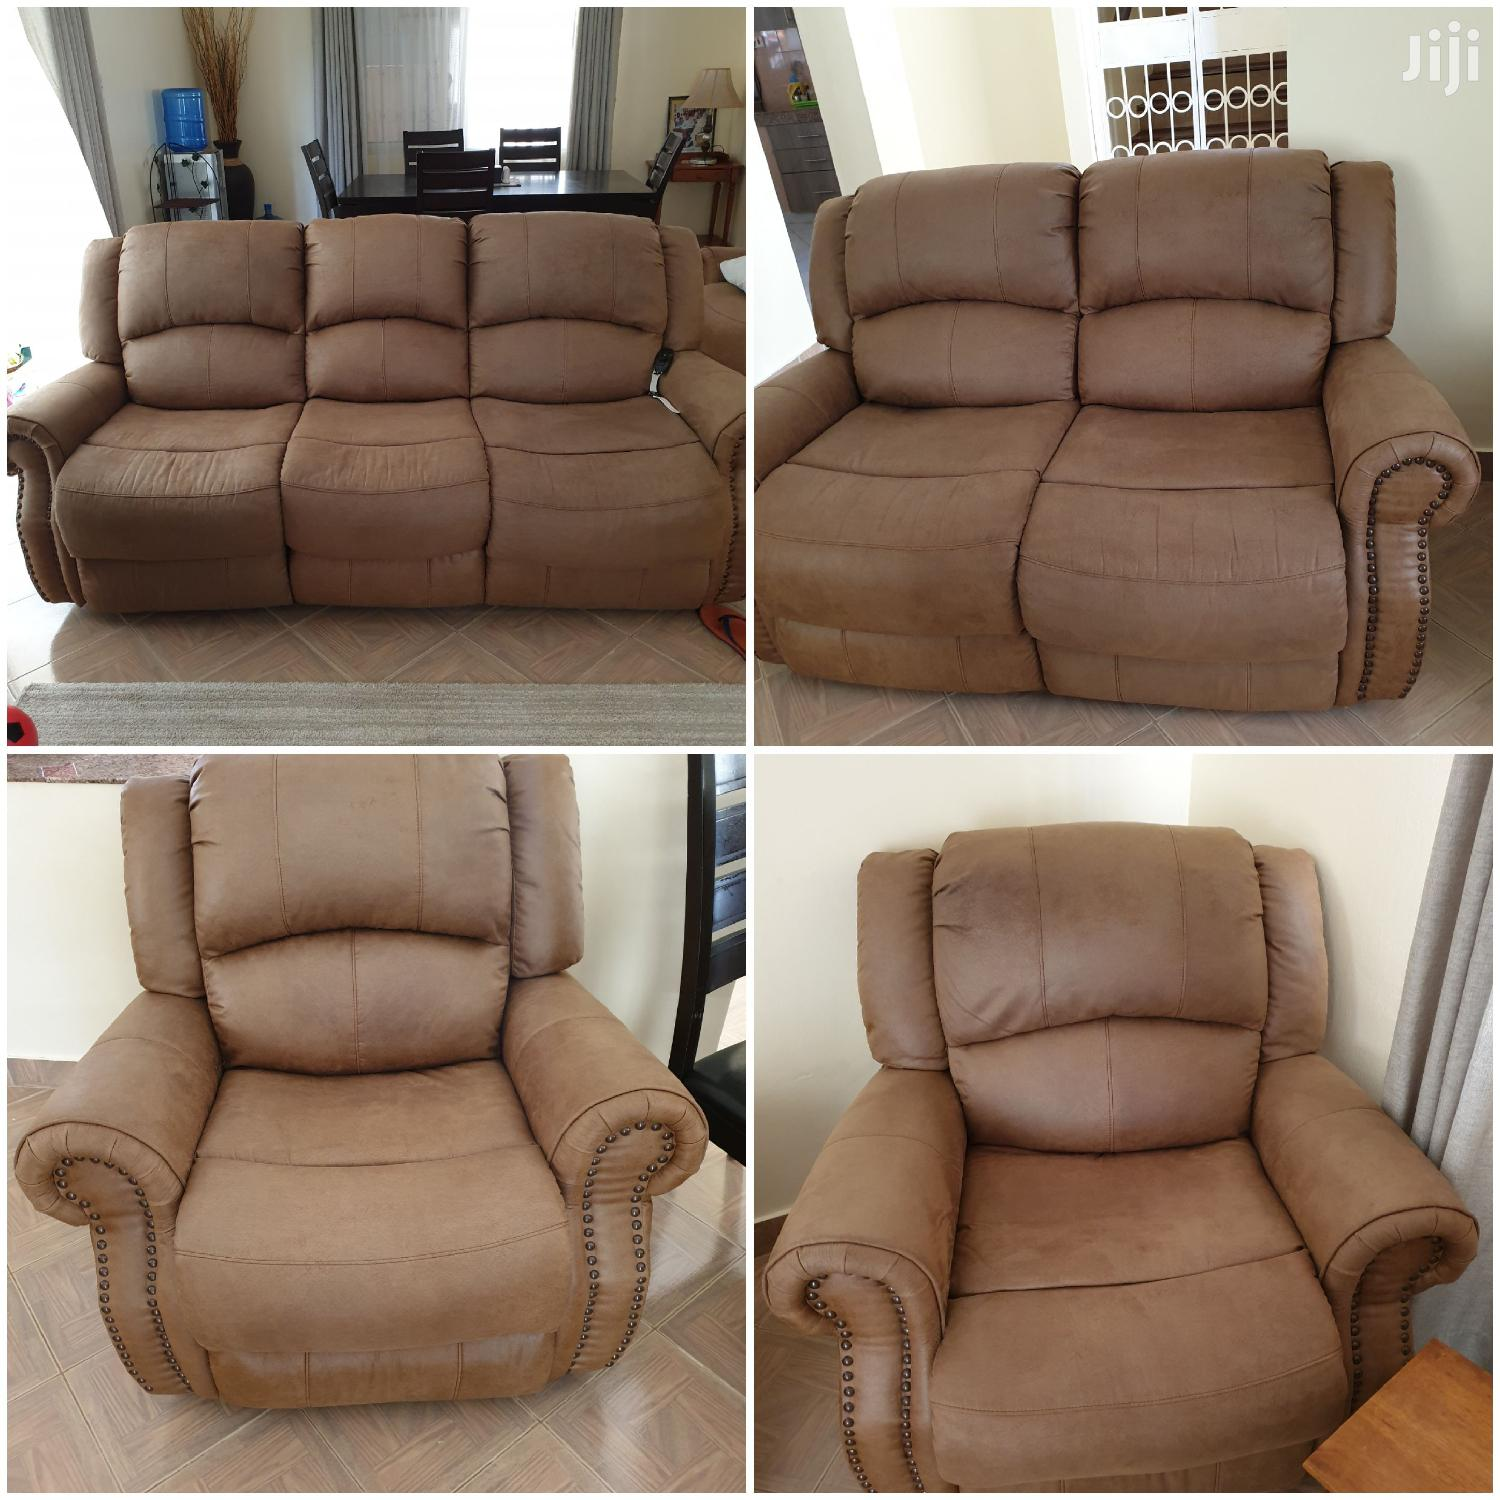 Archive: 7 Seater Fabric Recliner Sofa